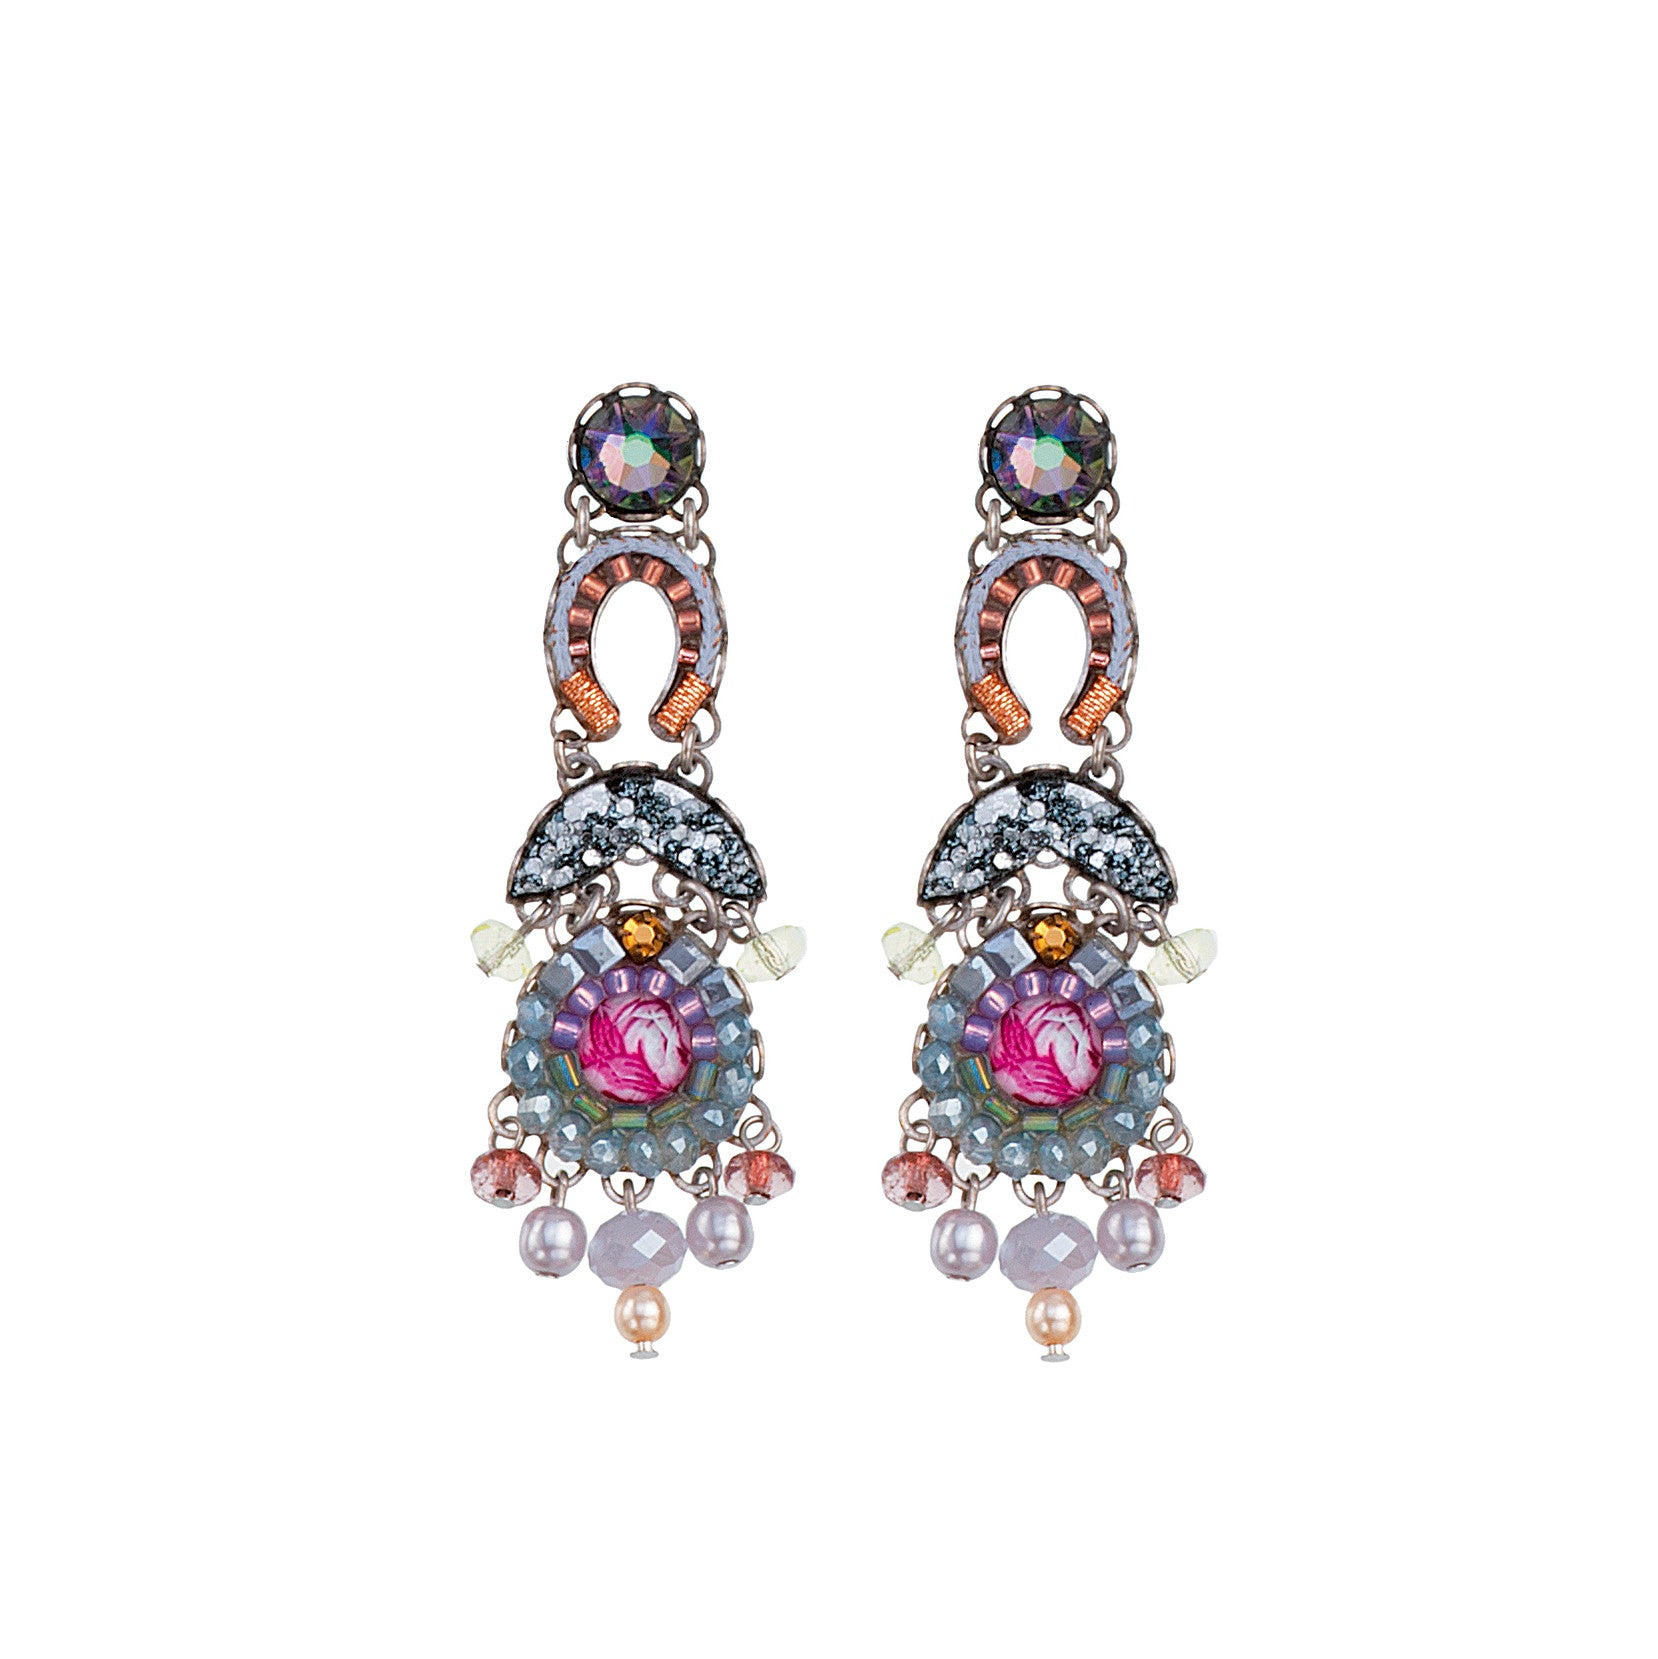 Jasmine 1264 Earrings